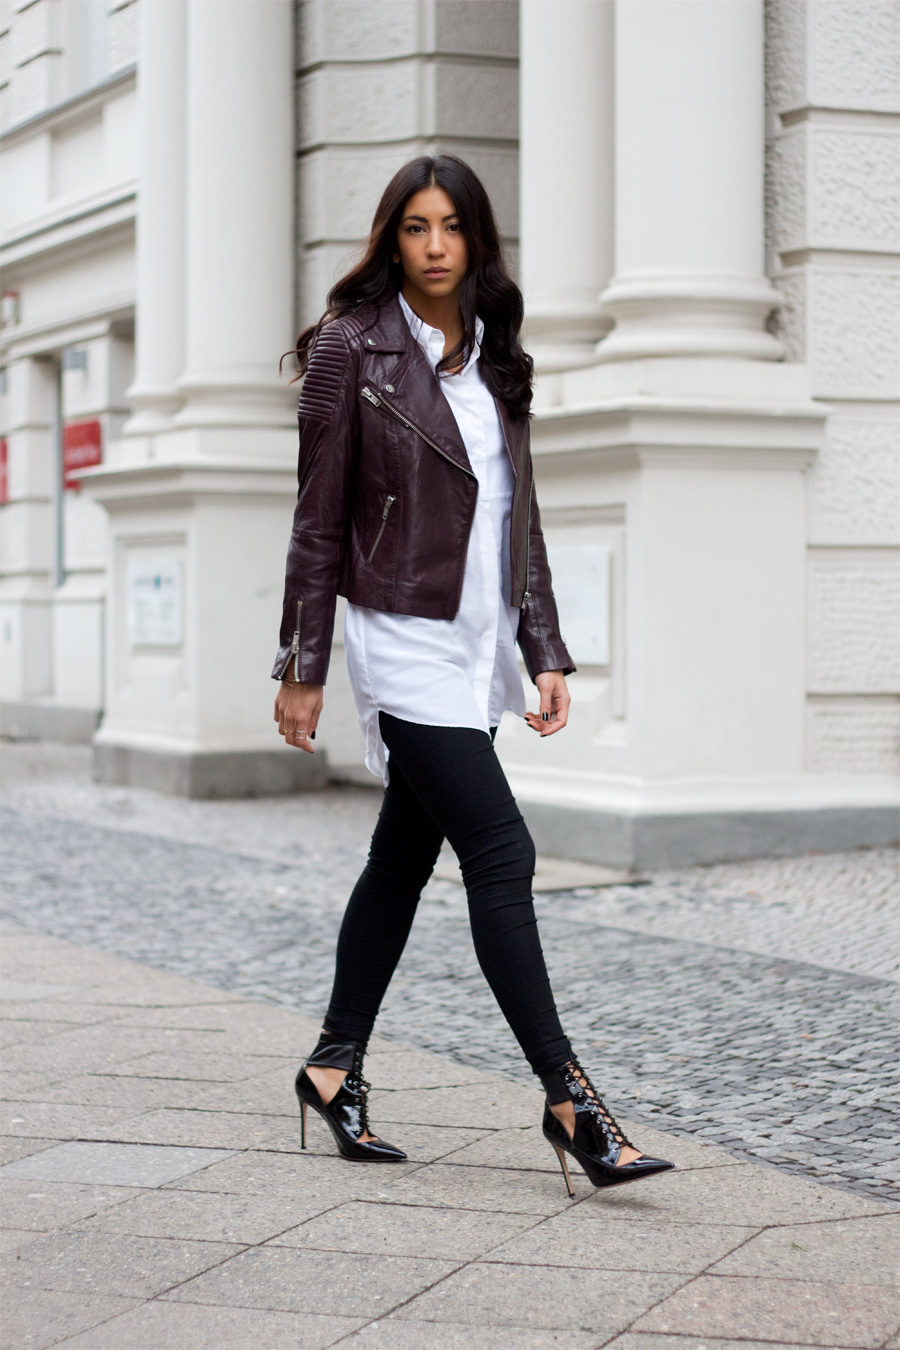 Kayla Seah is wearing a burgundy leather jacket from Edited